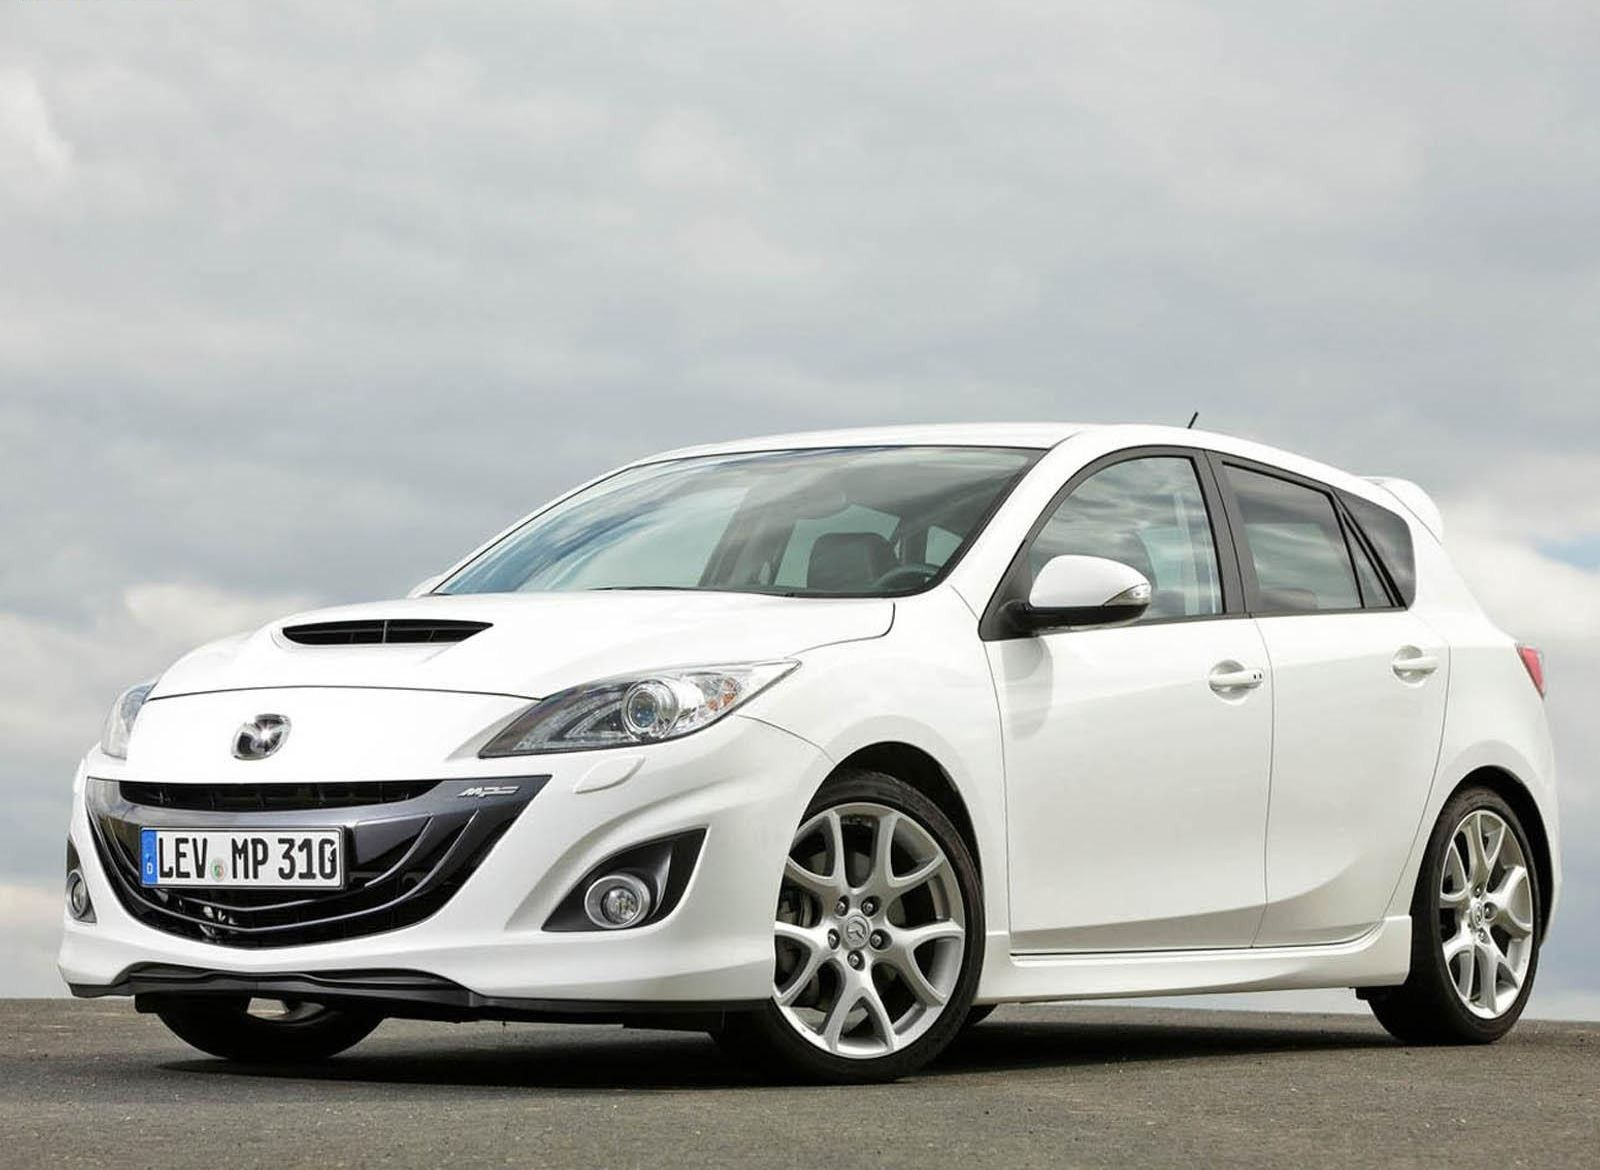 We Are Searched Best 2014 Mazda 3 Spy Photos High Resolution Big Size  Images, HD Wallpaper For YOu Download Mazda 3 Photos Online Car Wallpaper  No.